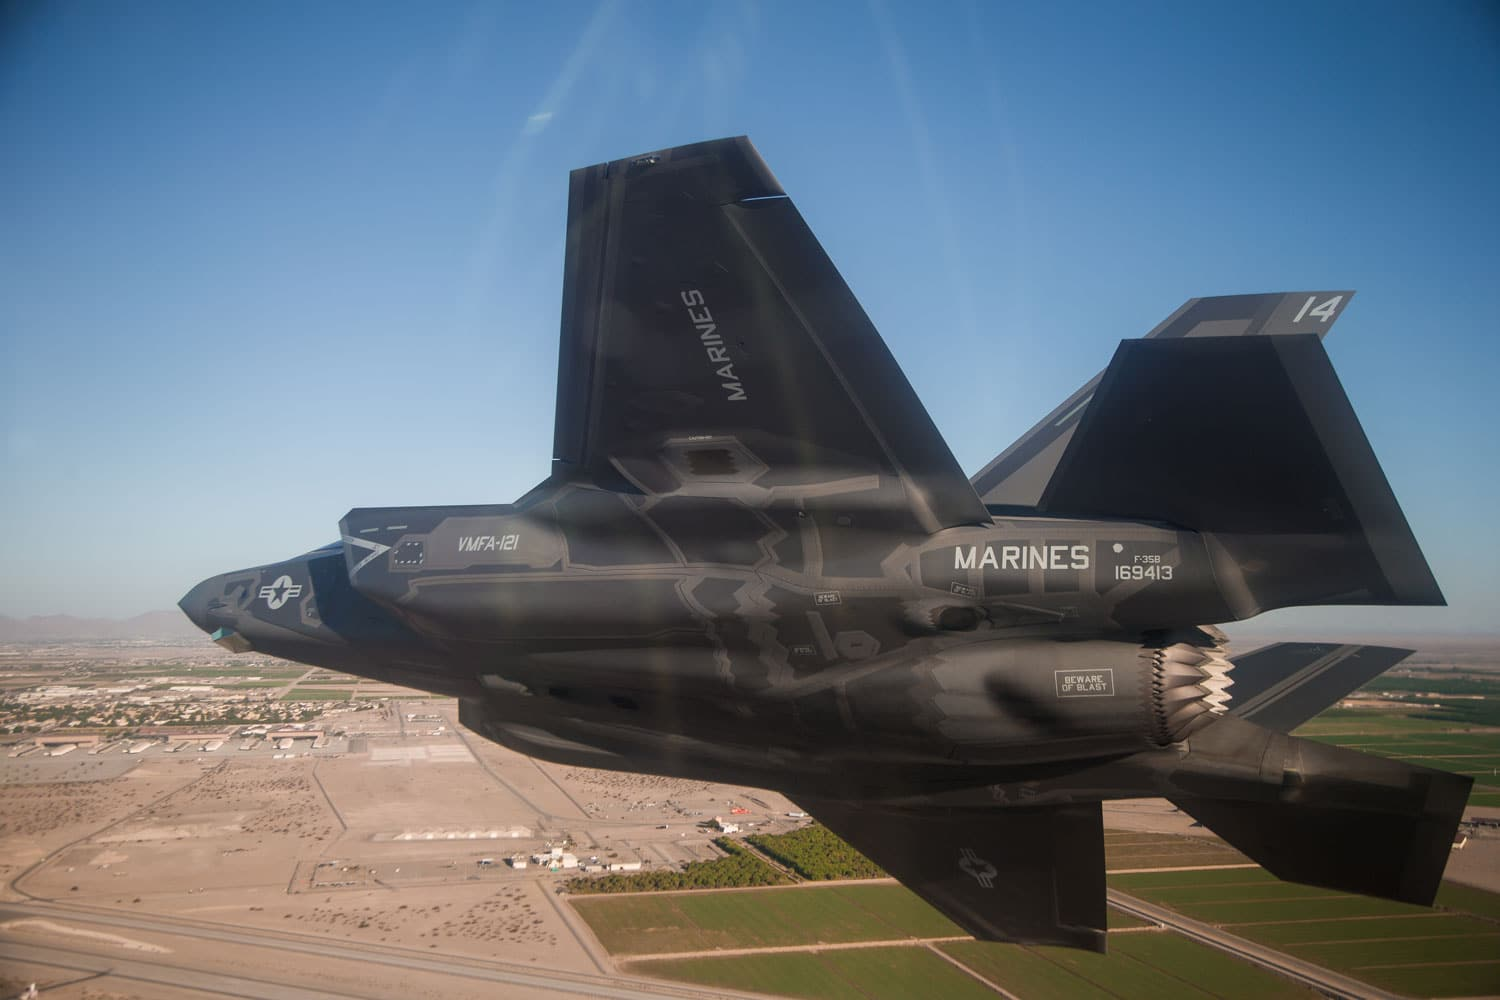 A U.S. Marine Corps F-35B Lightning II assigned to Marine Aviation Weapons and Tactics Squadron One prepares to land after a Tactical Intercept/Air Combat Maneuvering exercise during Weapons and Tactics Instructor Course near Yuma, Arizona.